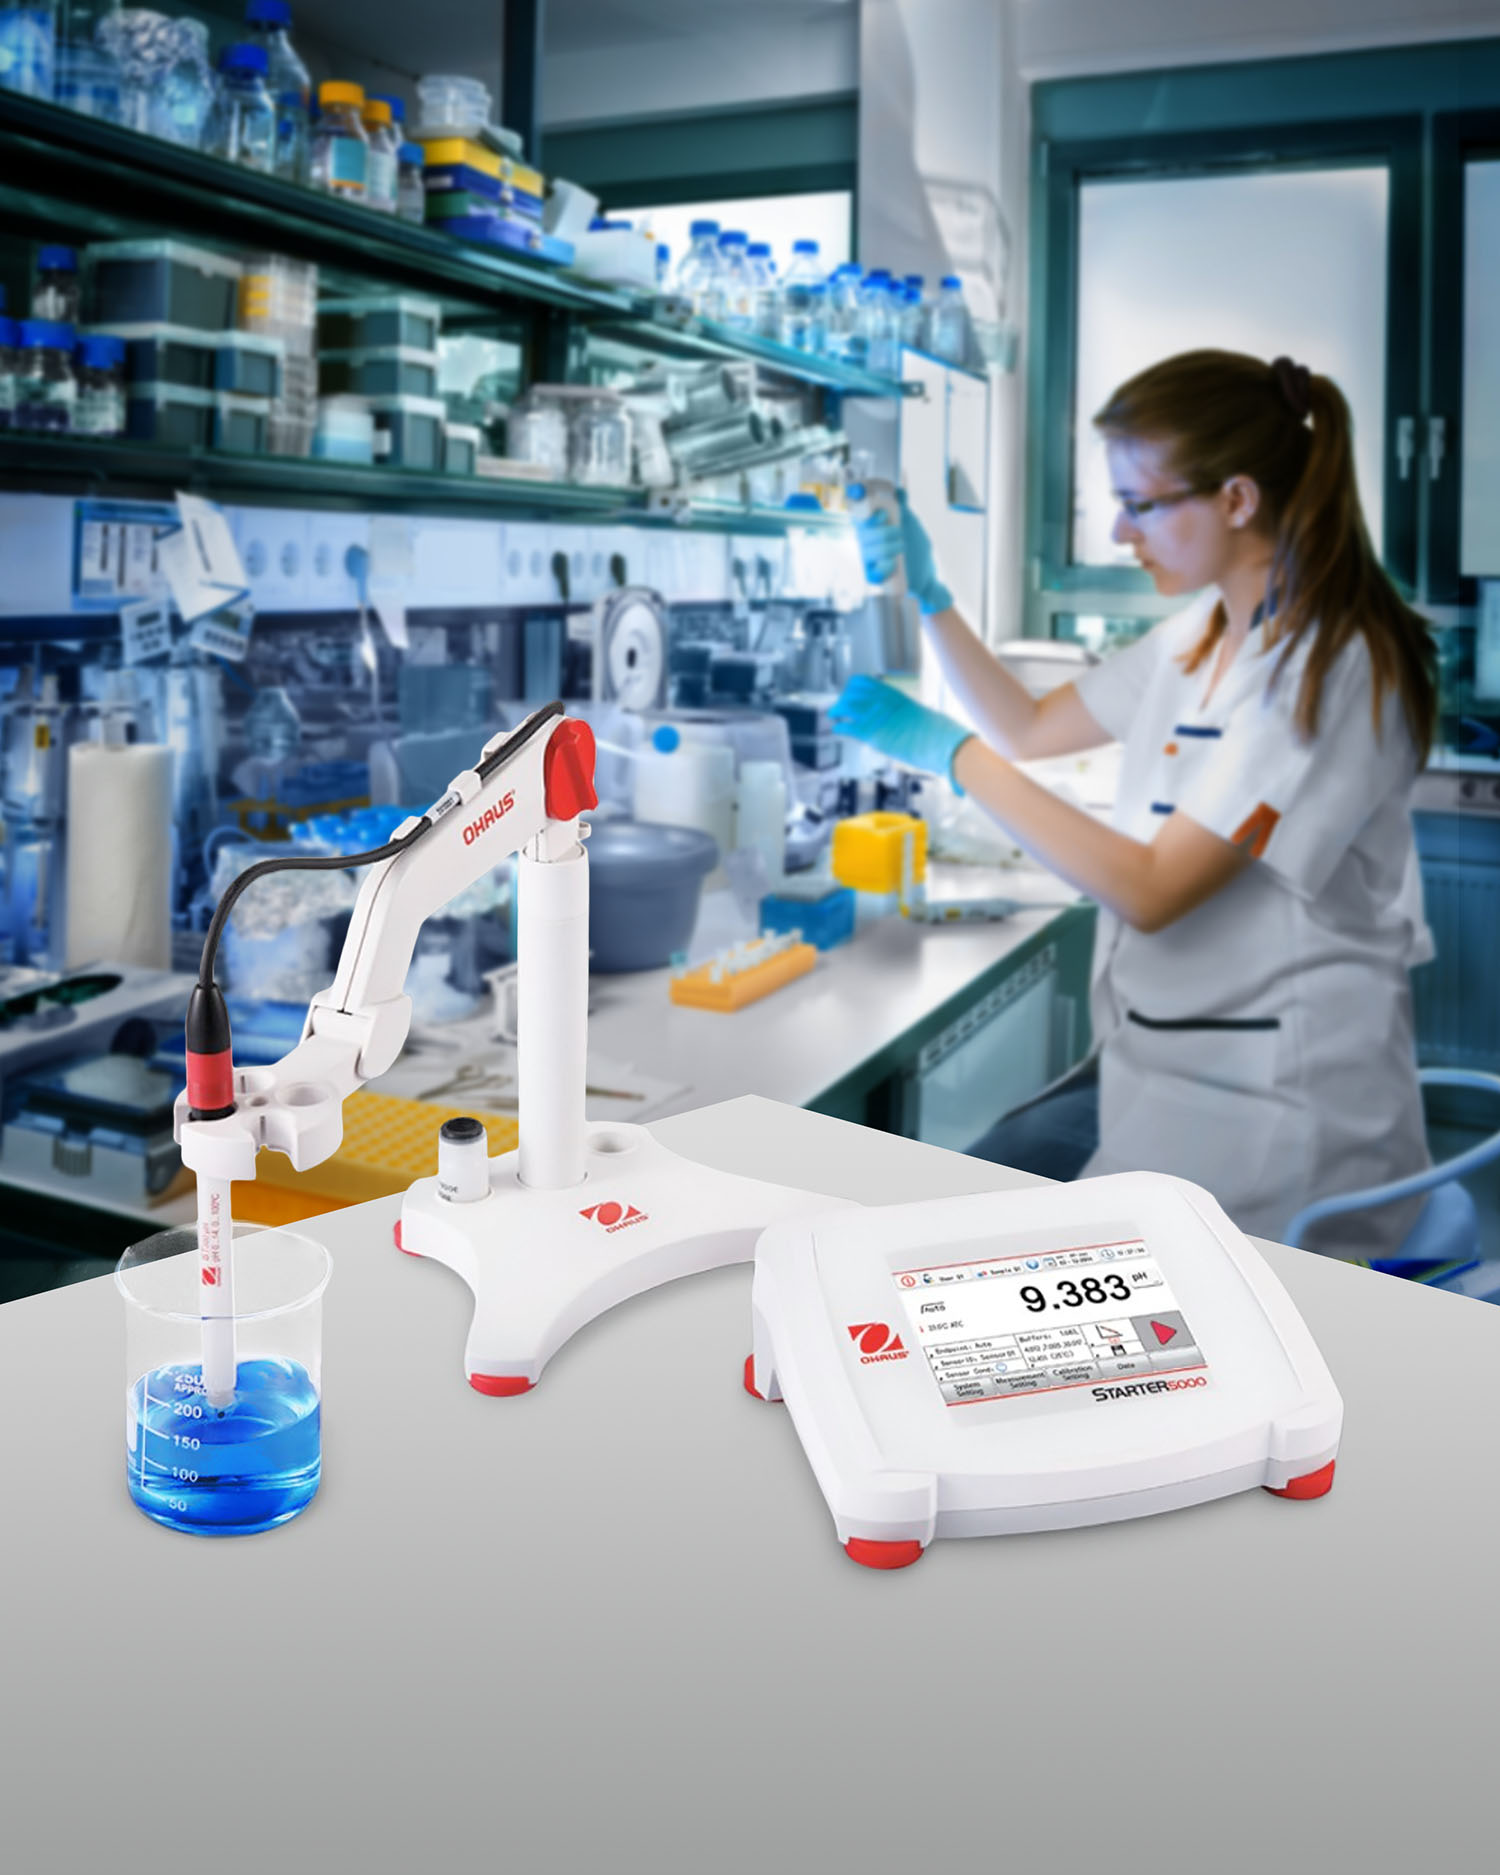 pH BENCH METER FEATURES INTUITIVE INTERFACE